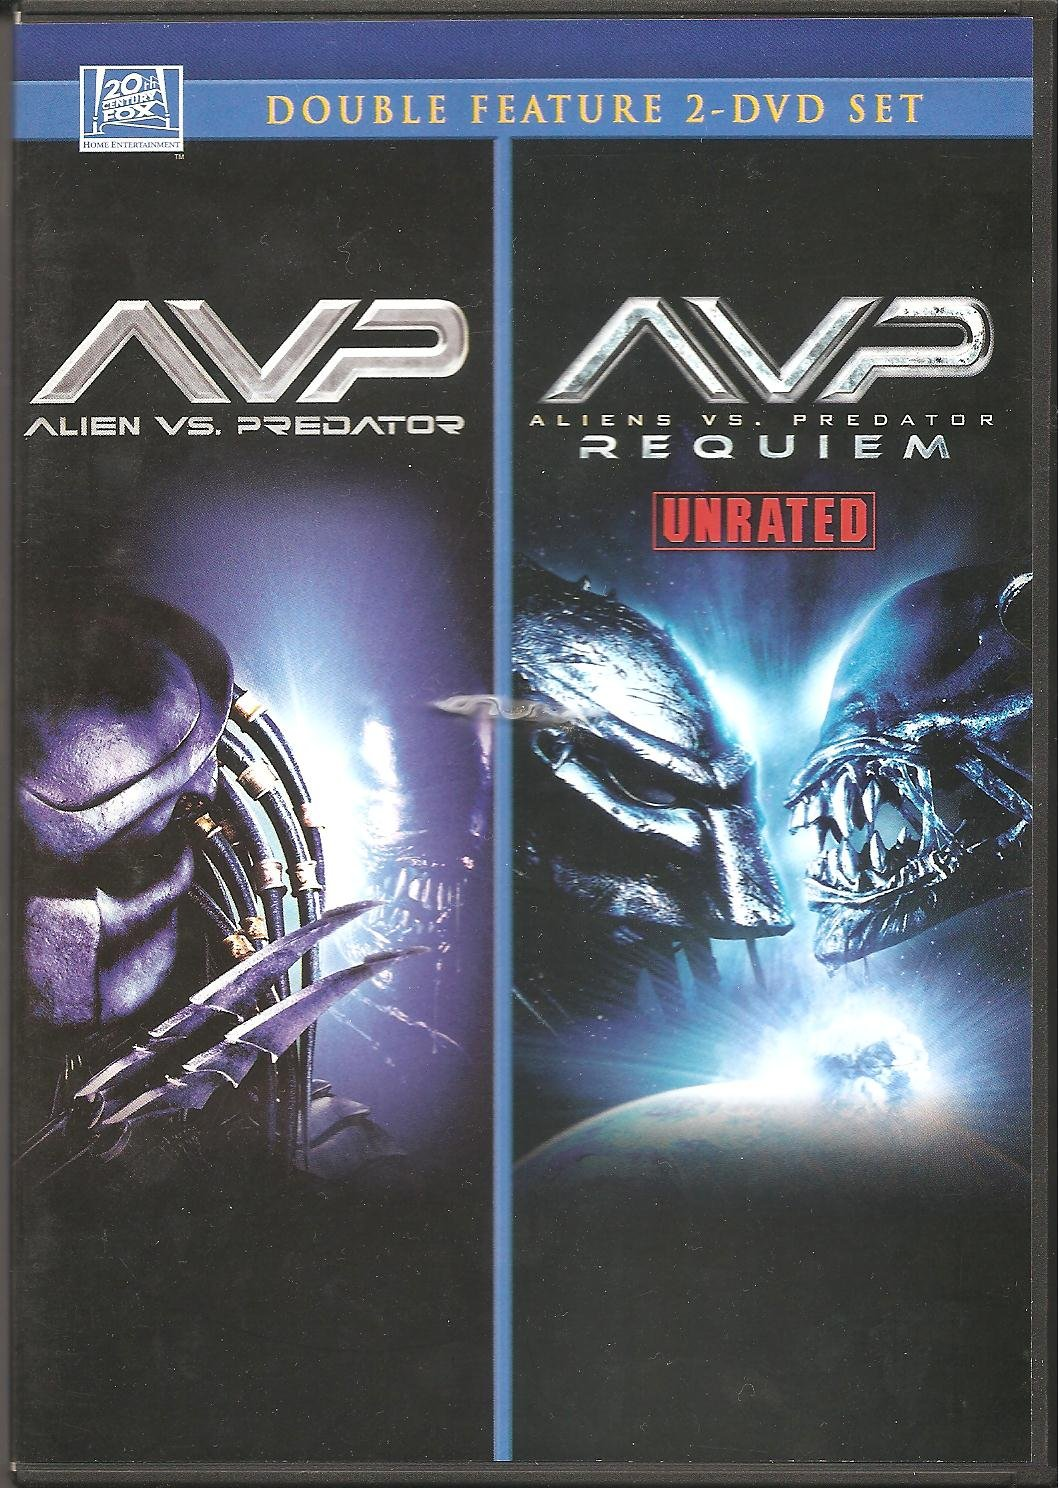 Alien vs. Predator/AVP - Requiem/Unrated Double Feature: Amazon.es: Cine y Series TV